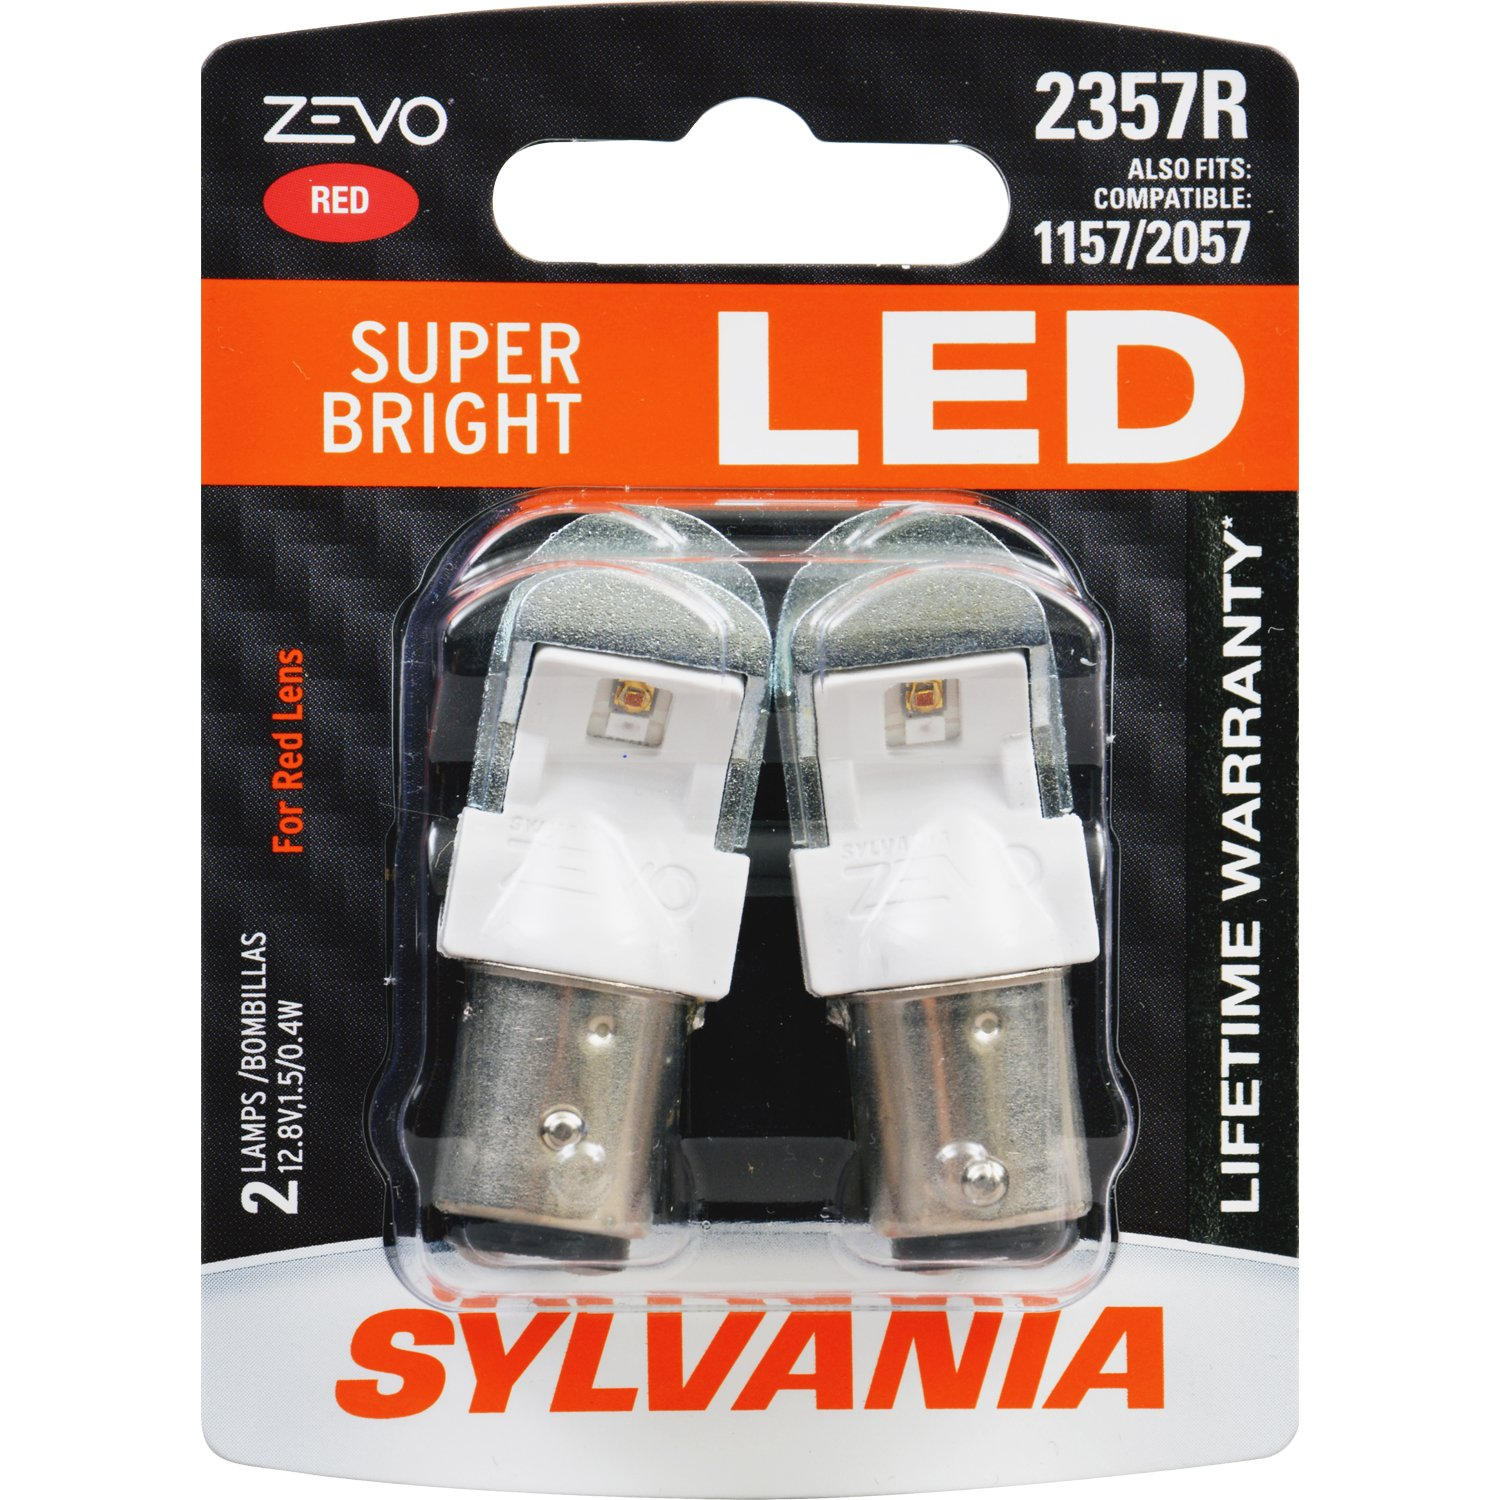 Amazon.com: SYLVANIA - 2357 ZEVO LED Red Bulb - Bright LED Bulb, Ideal for  Stop and Tail Lights (Contains 2 Bulbs): Automotive